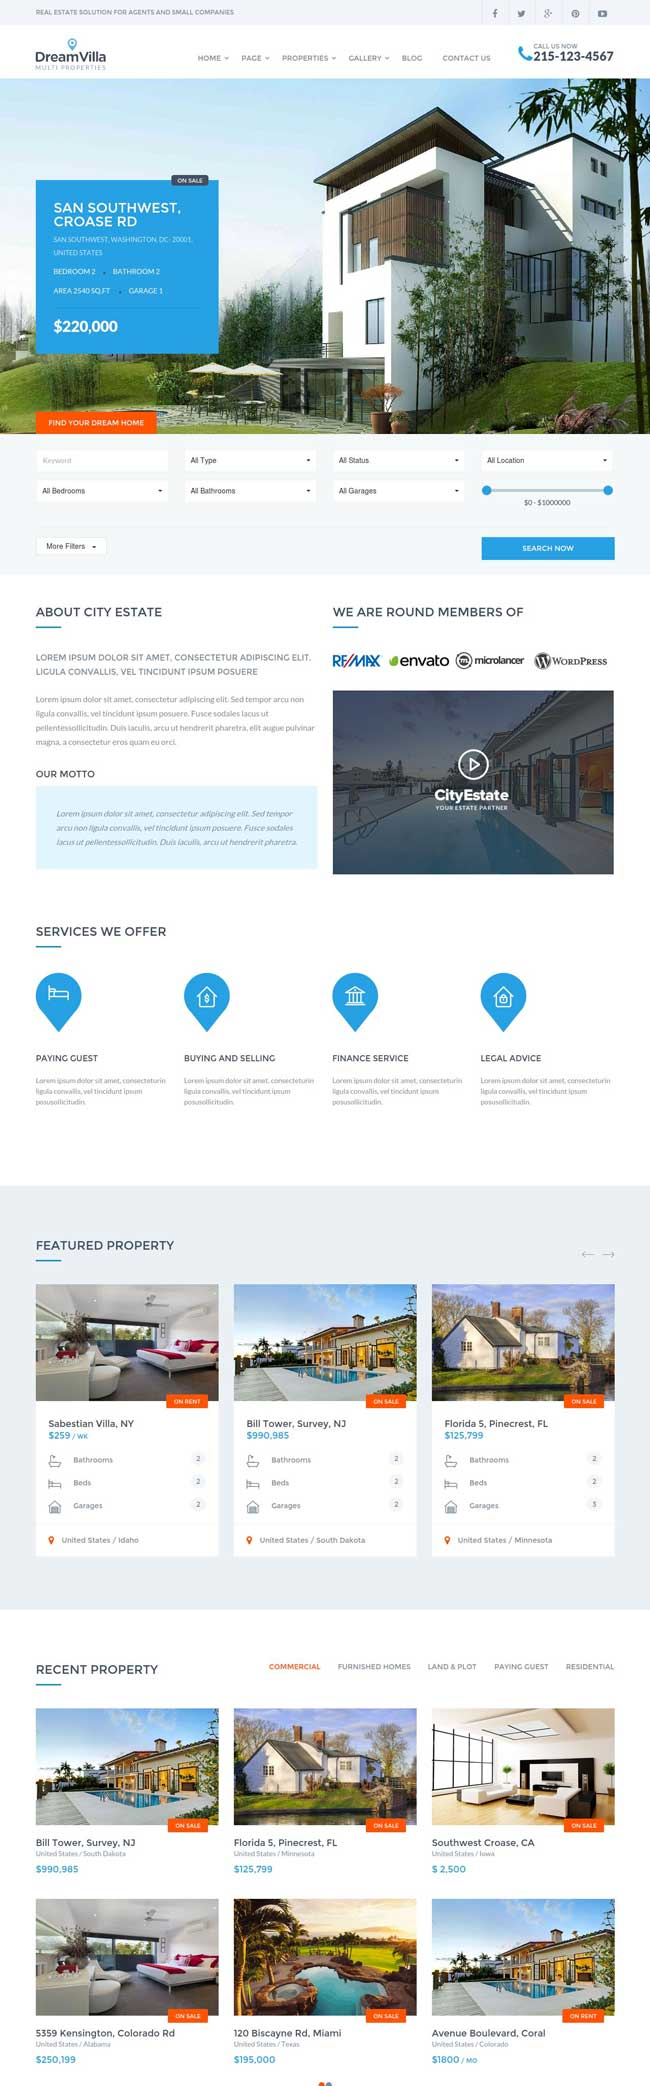 DreamVilla-Real-Estate-WordPress-Theme